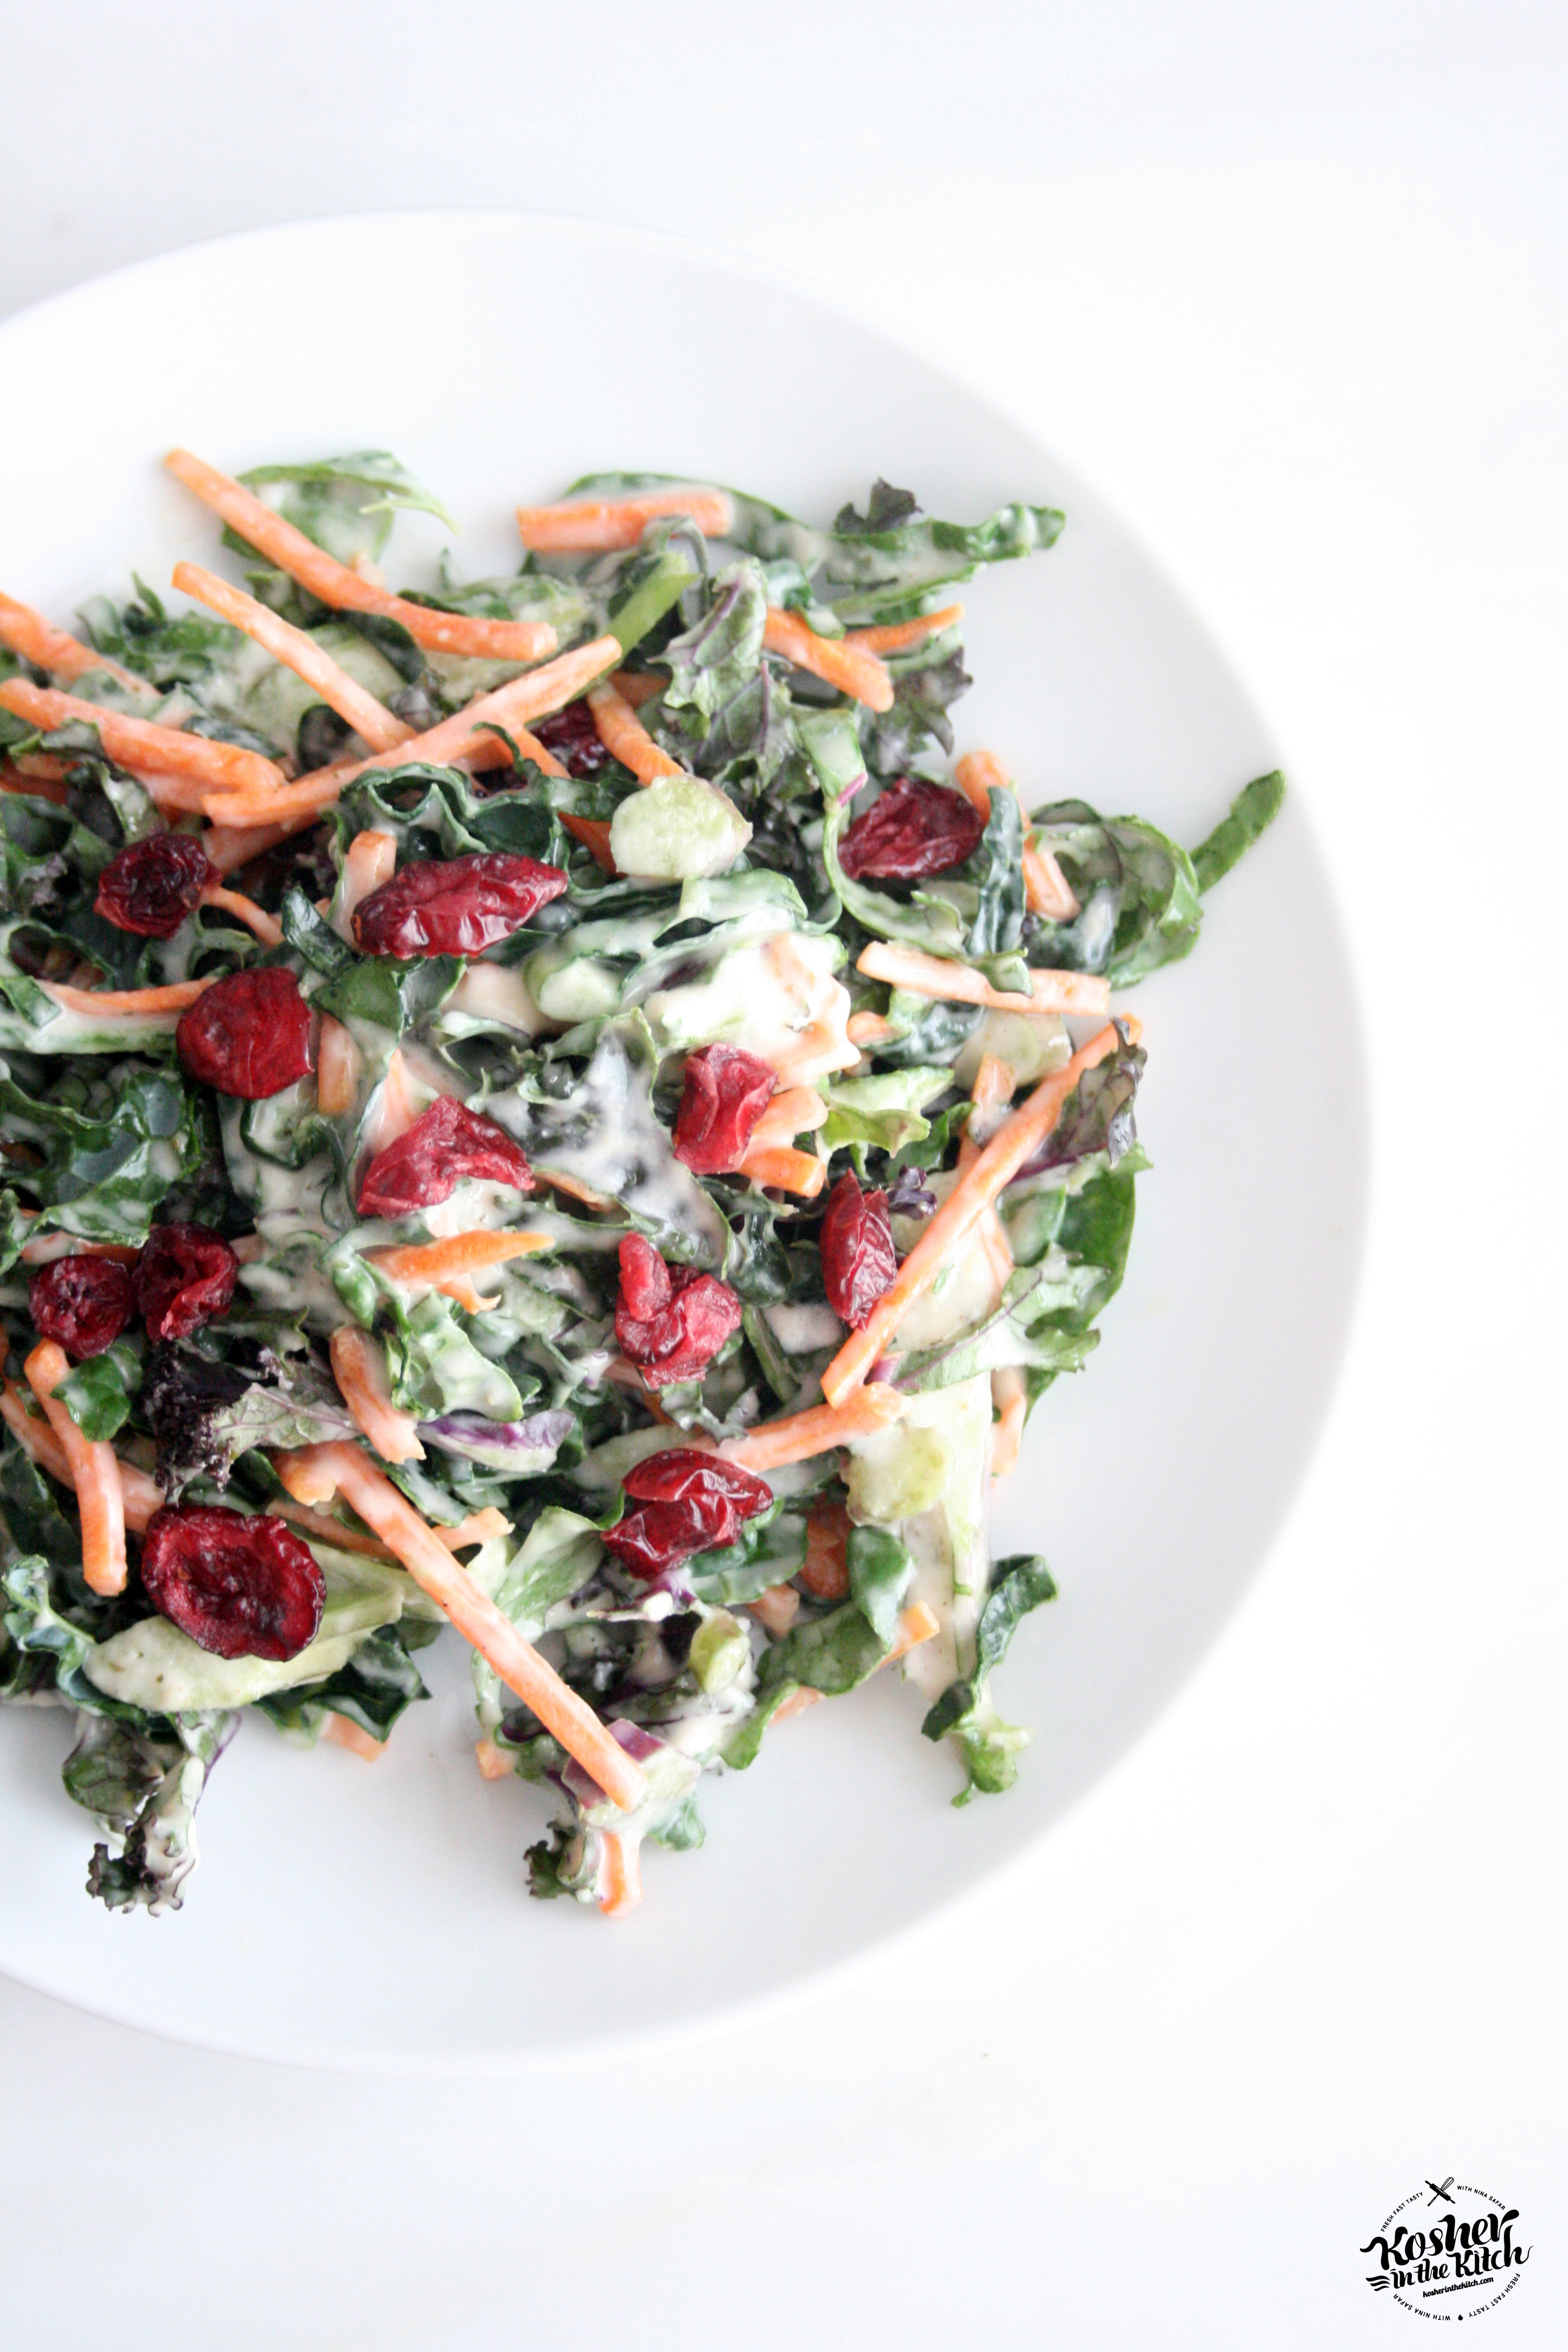 Shredded Kale Salad with Tahini Dressing - Kosher In The Kitch!